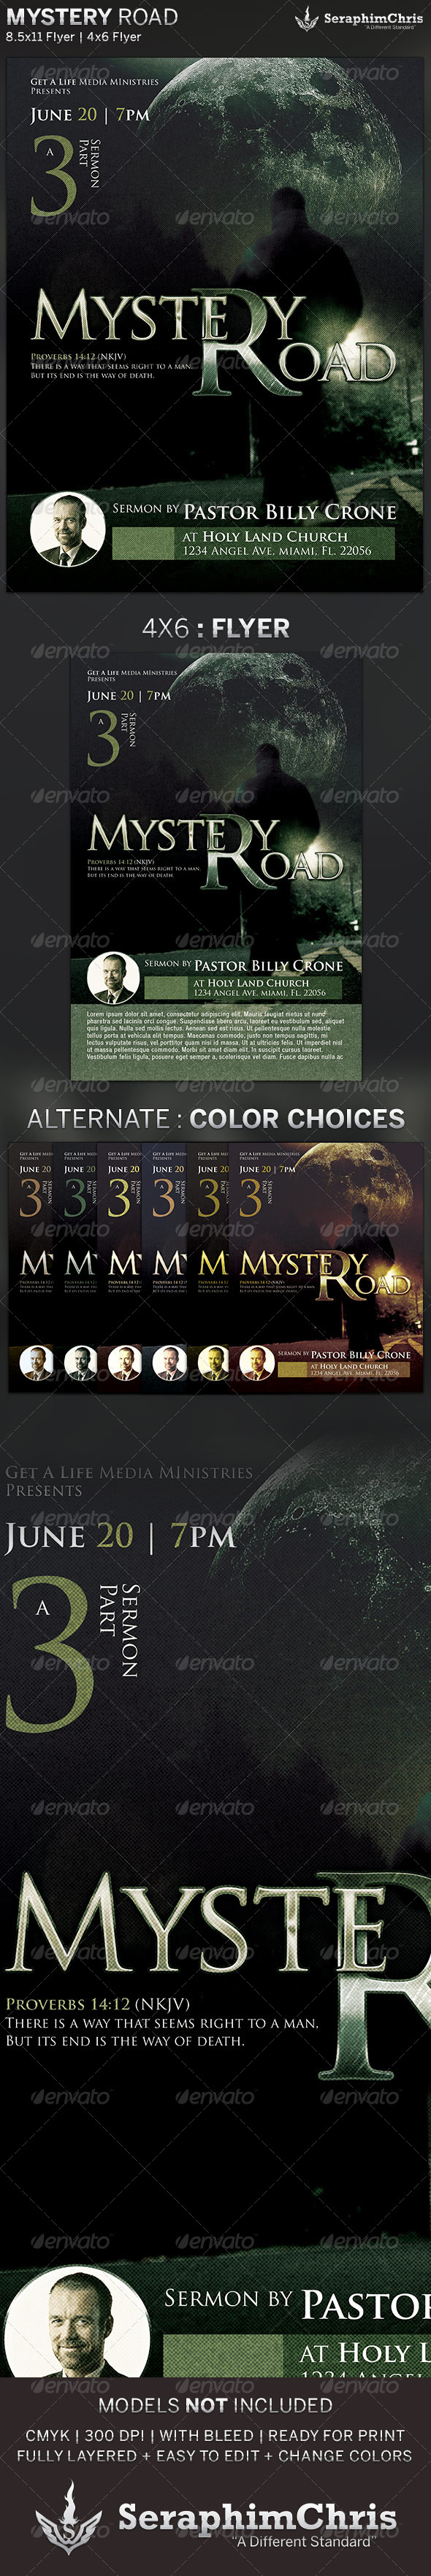 Mystery Road: Church Flyer Template - Church Flyers